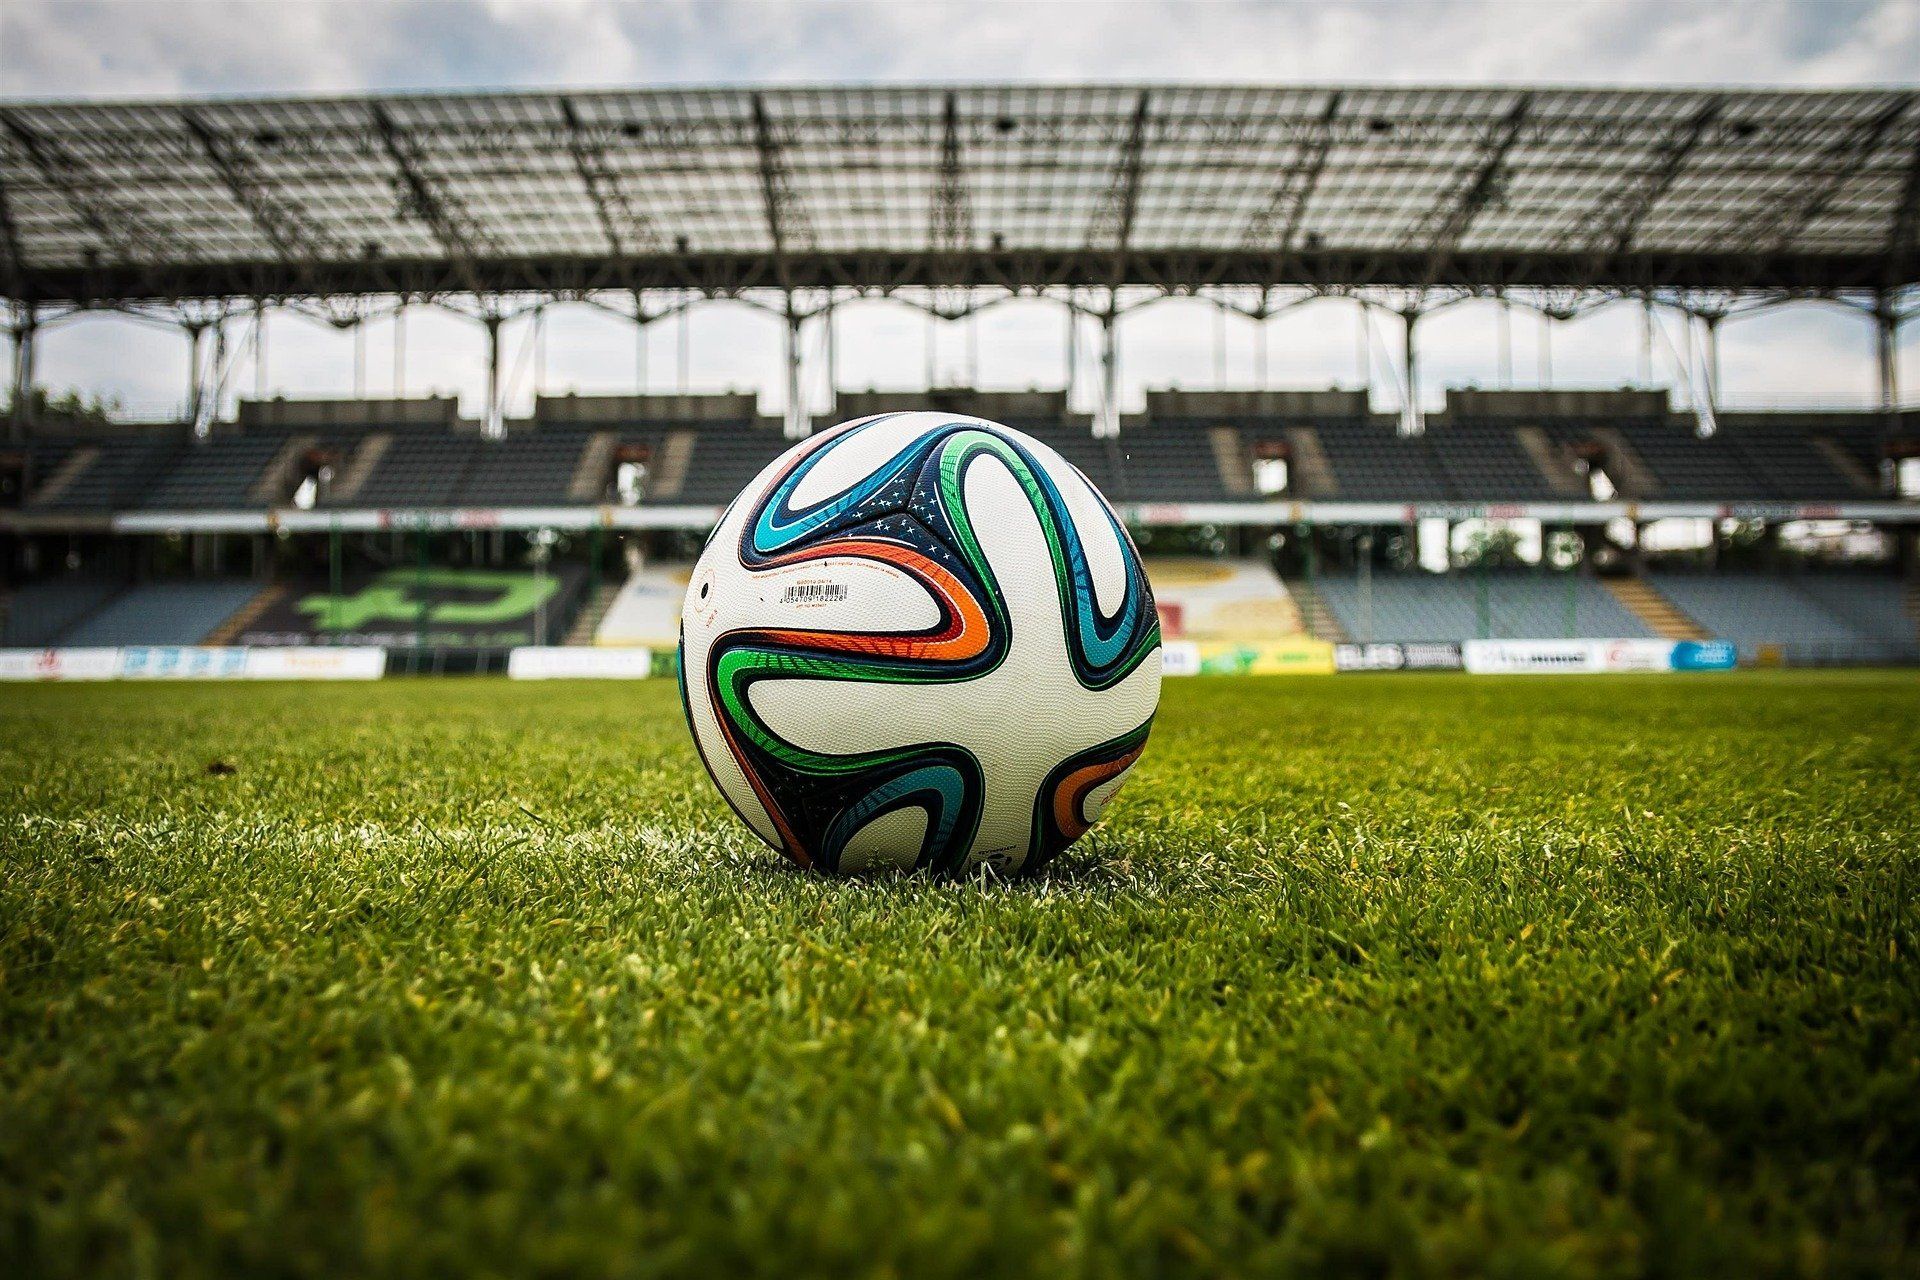 World cup football places in the middle of a soccer stadium